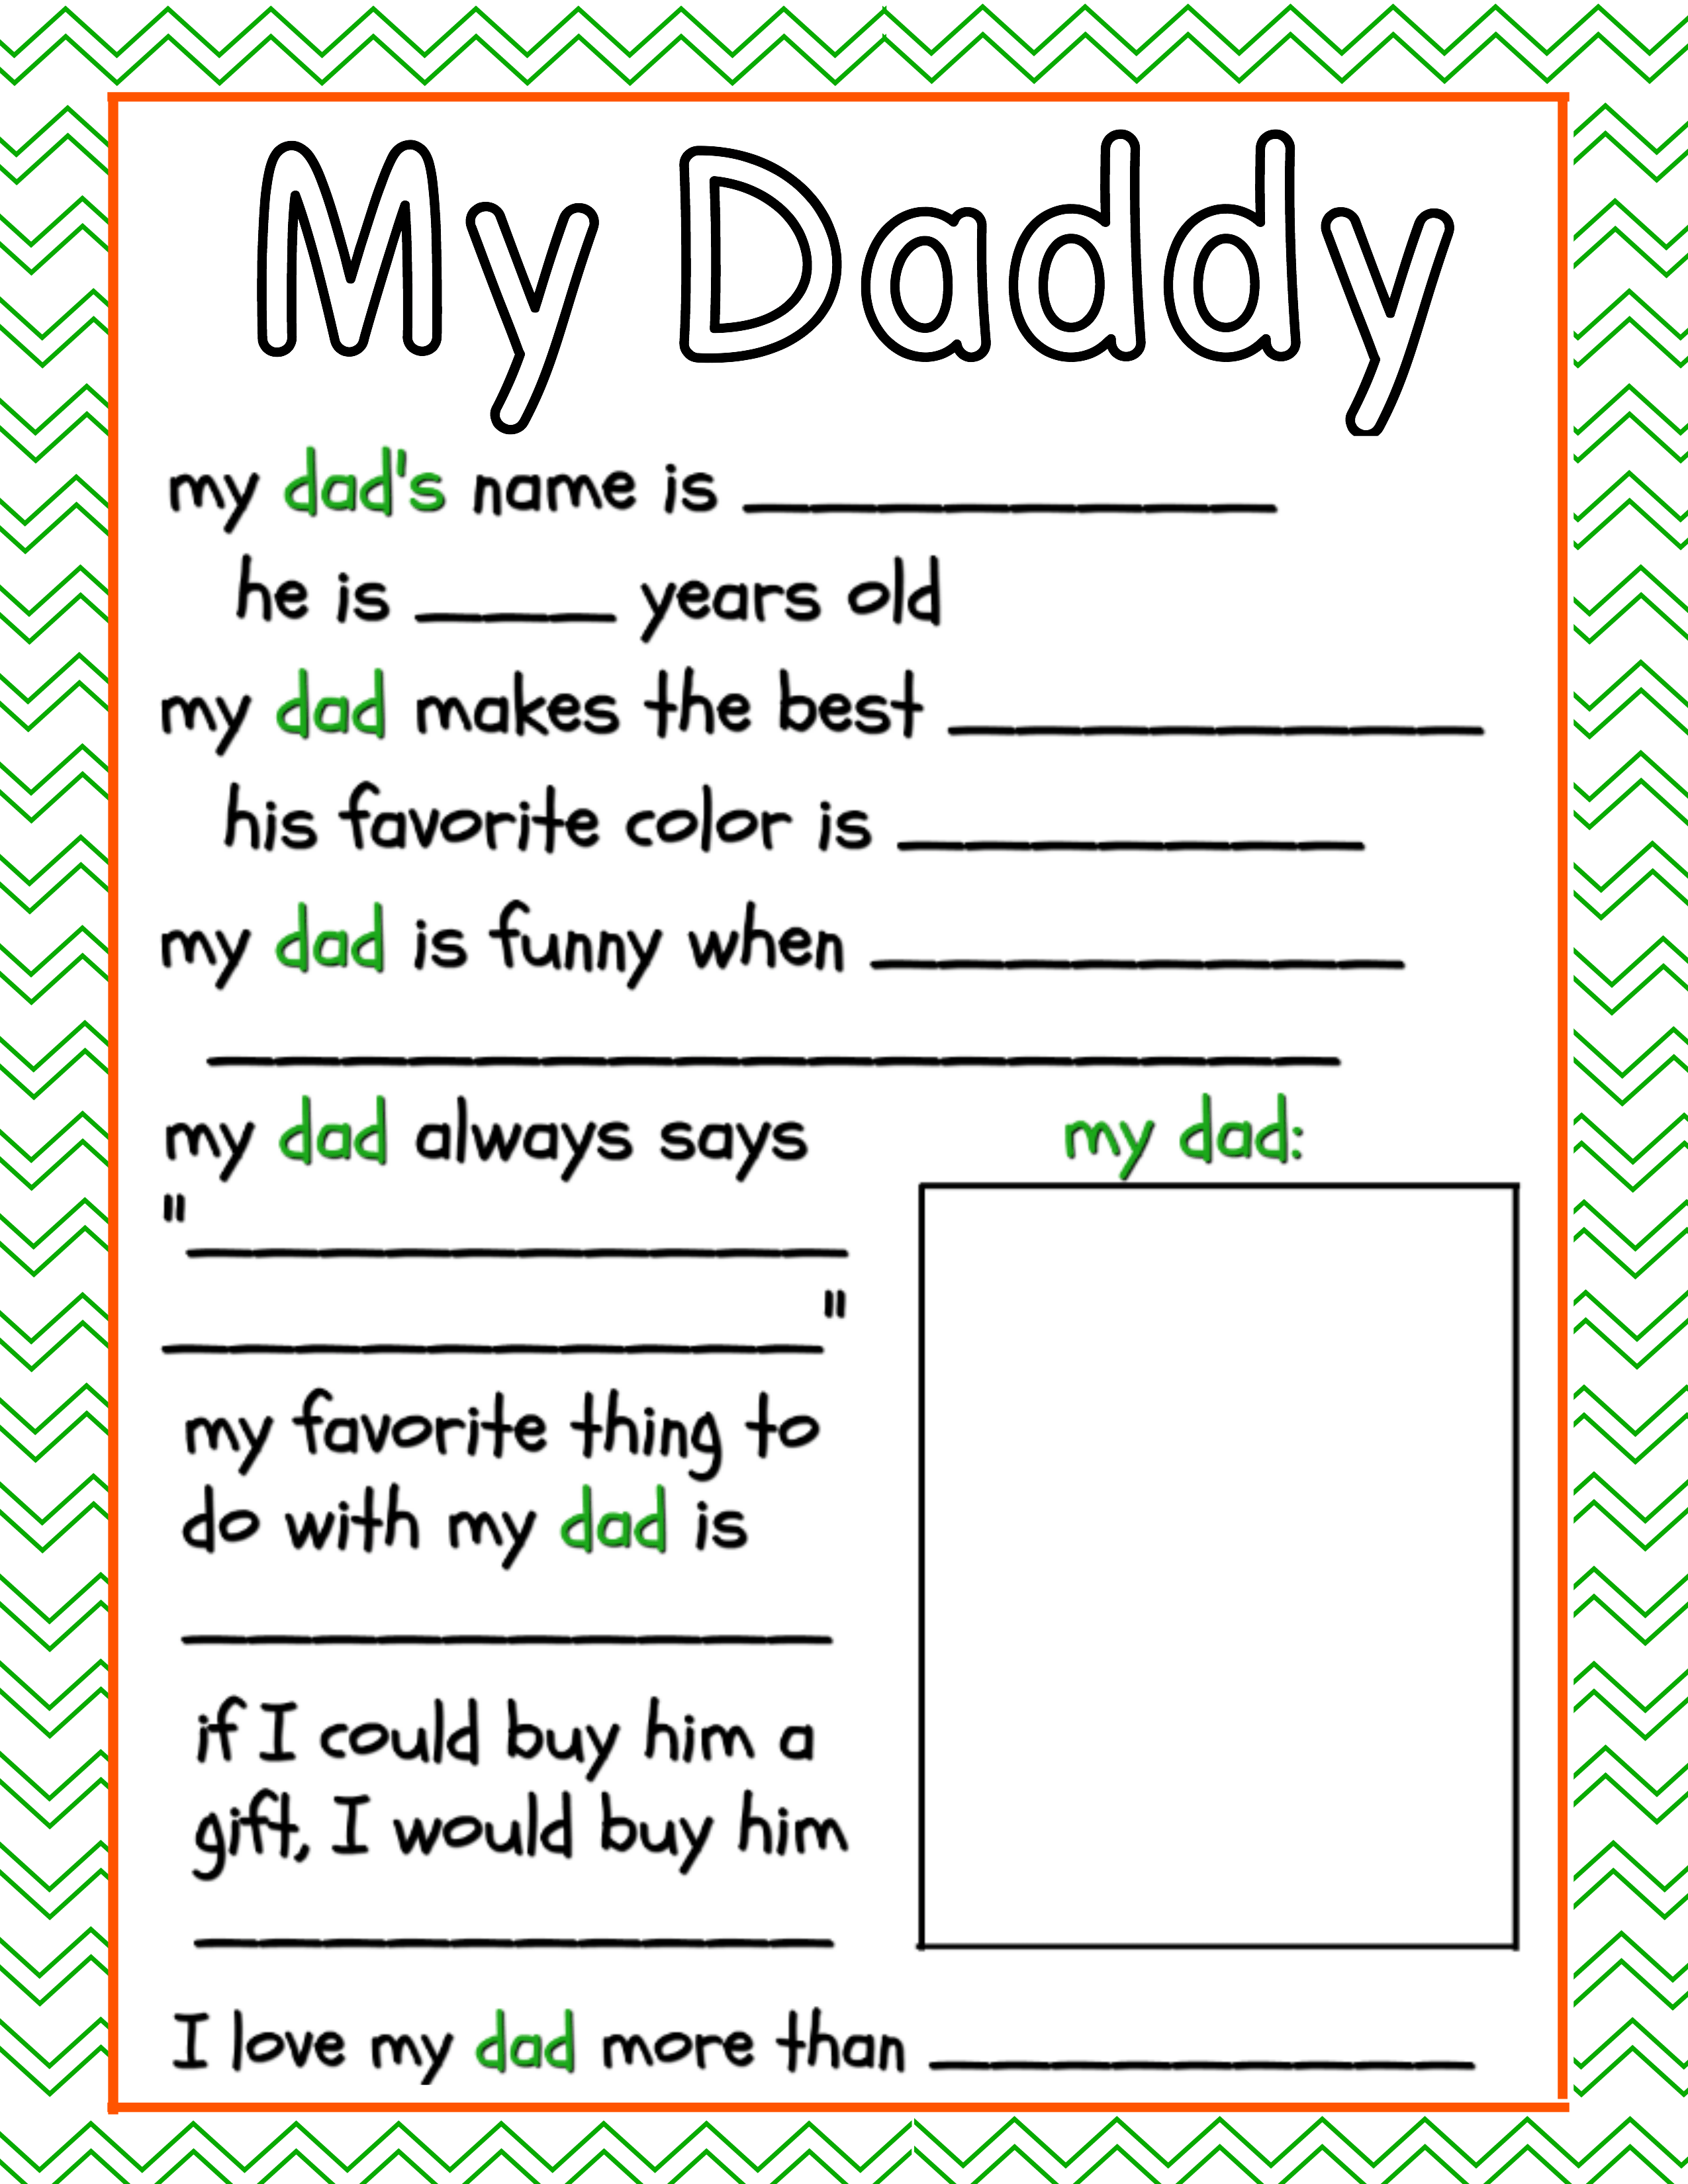 photograph about Father's Day Questionnaire Printable called All Pertaining to Father Free of charge Fathers Working day Printable ~ The Frugal Sisters